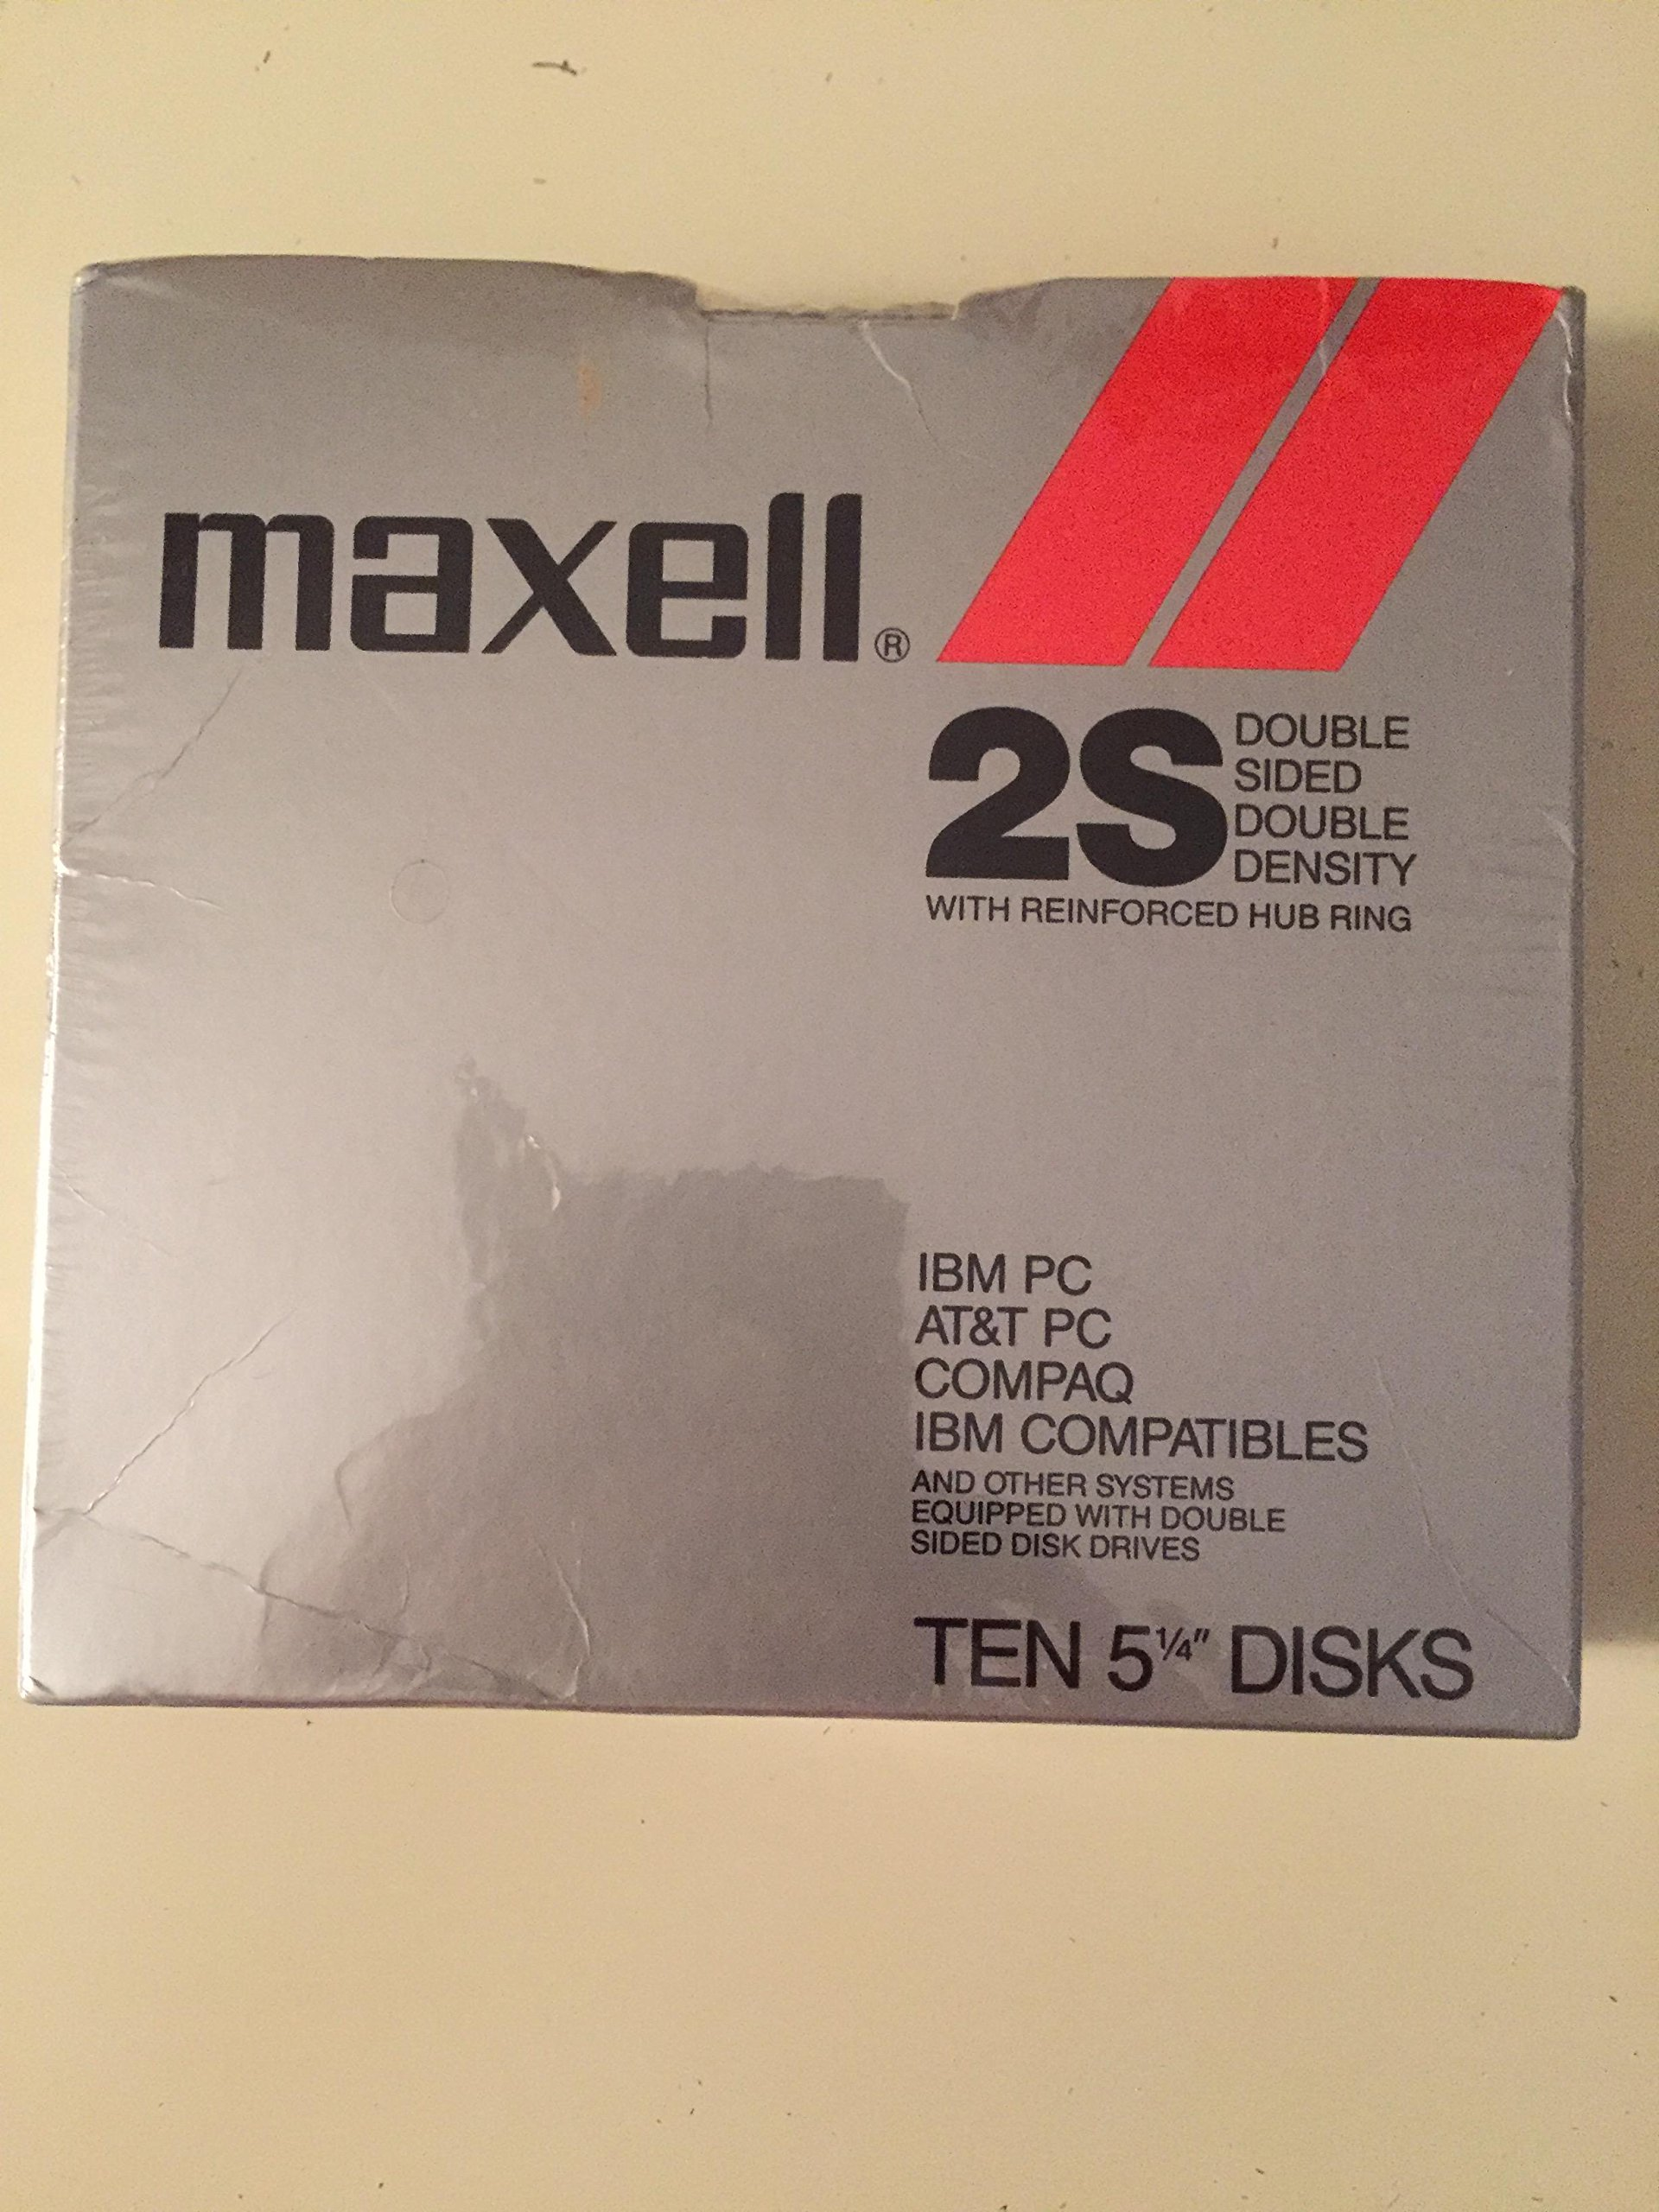 Maxell 2S Double Sided Double Density Pack of 10 Floppy Disks 5-1/4'' with Reinforced Hub Ring for IBM PC, AT&T PC, COMPAQ, IBM COMPATIBLES and Other Compatible Drives